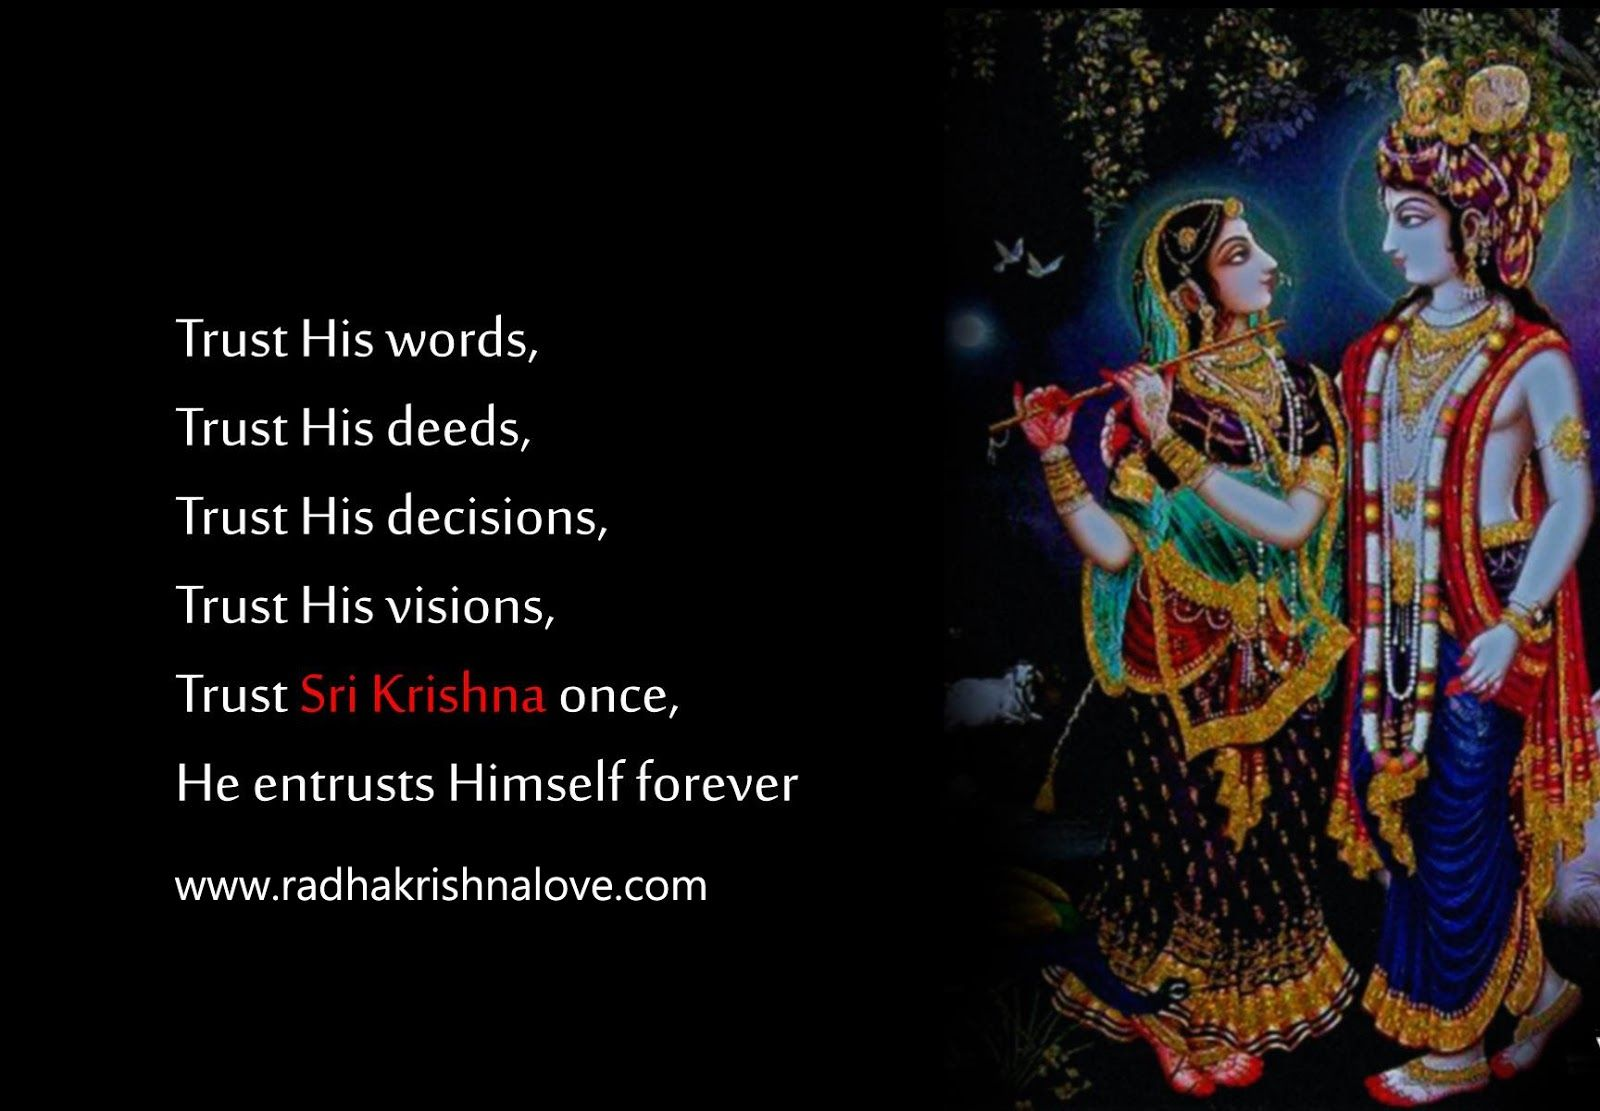 radha krishna quotes on love in english radha krishna in 2018